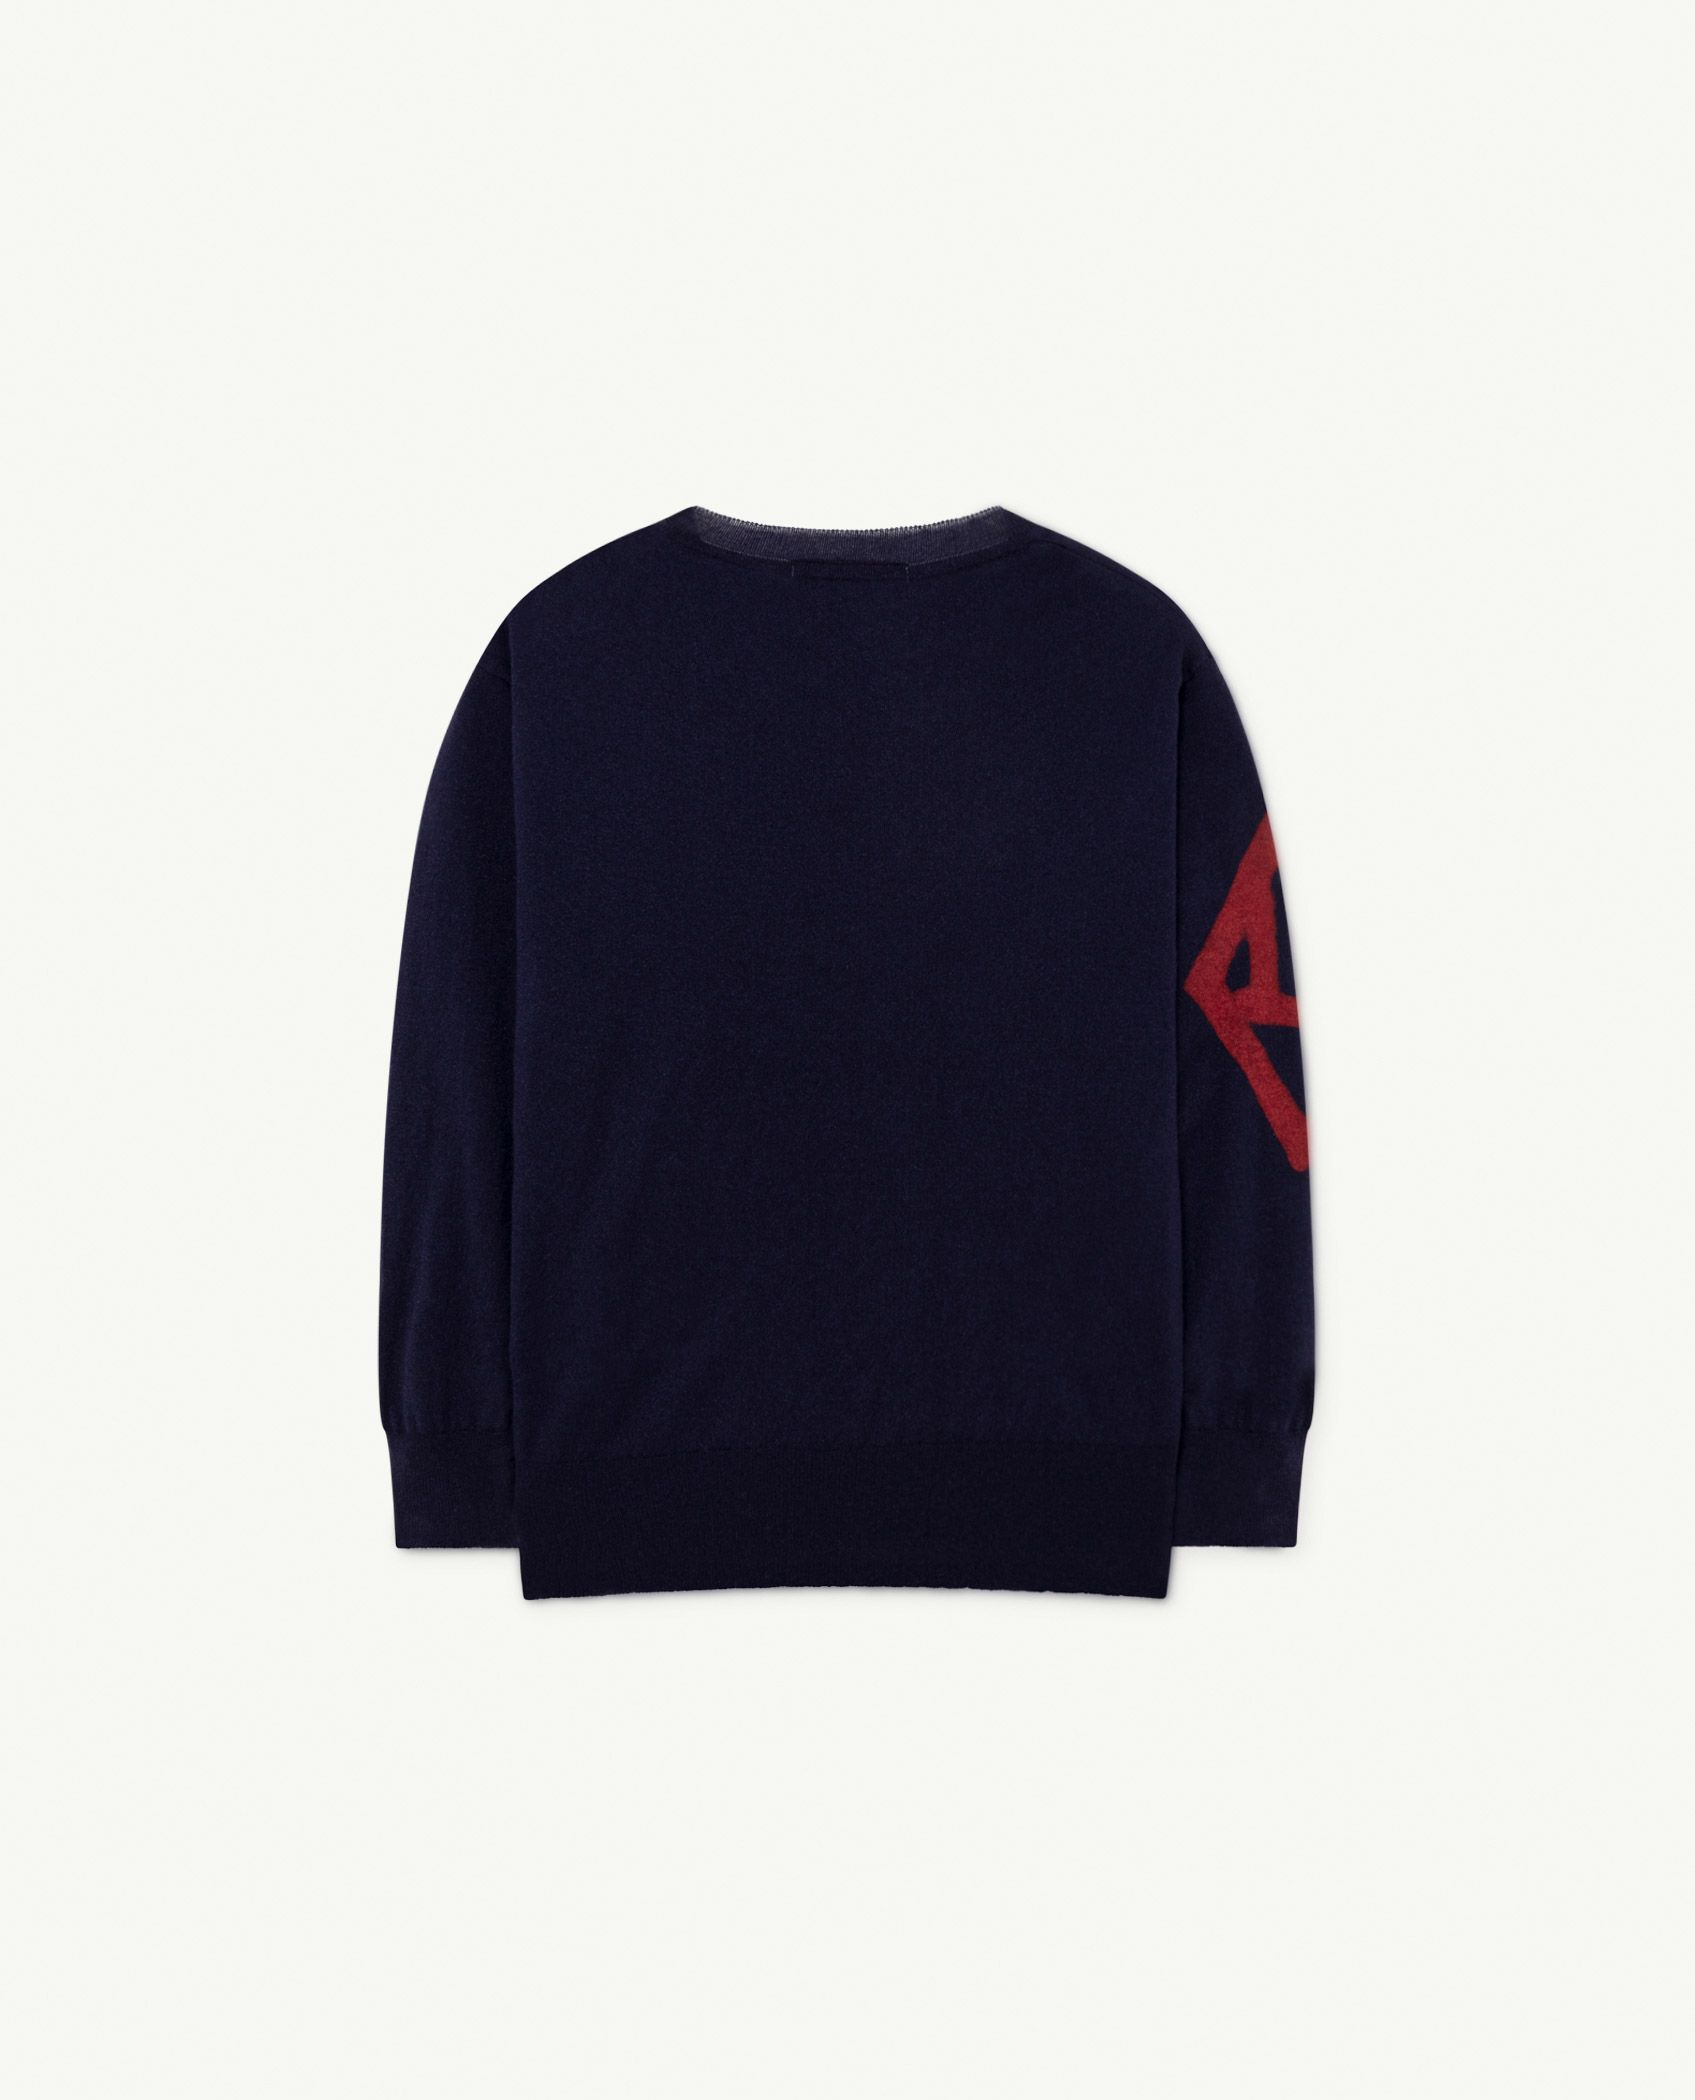 Navy The Animals Bull Sweater img-2